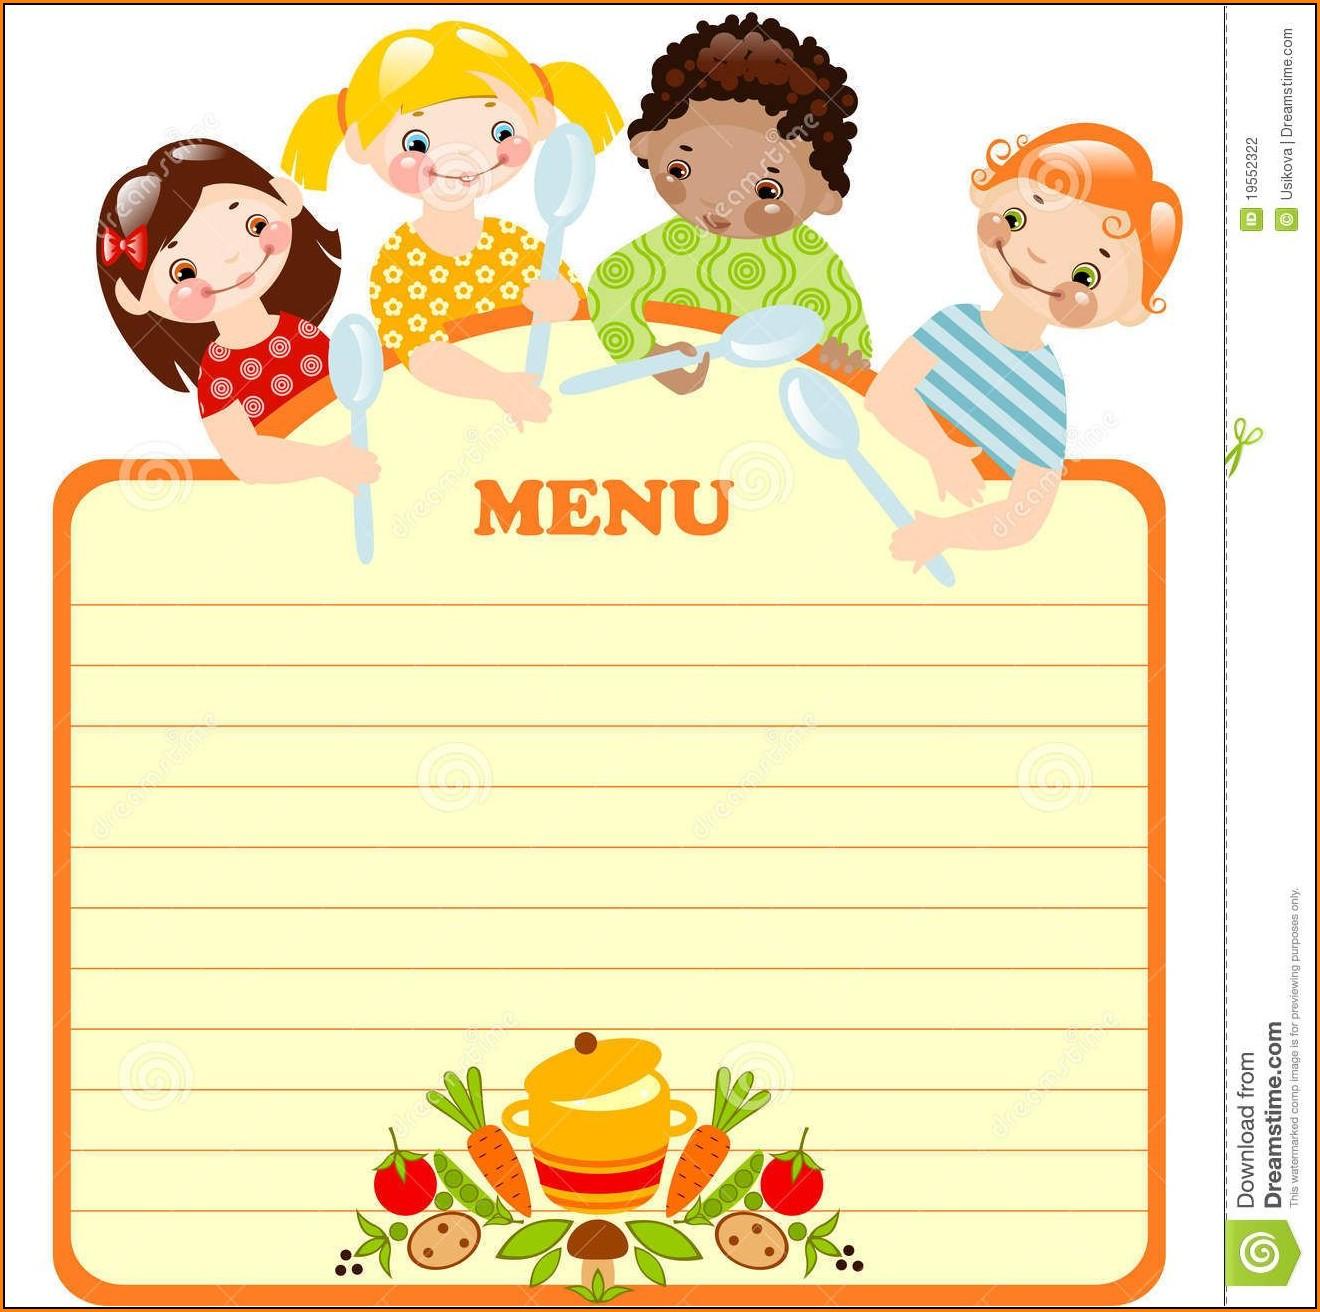 Blank Kids Menu Template